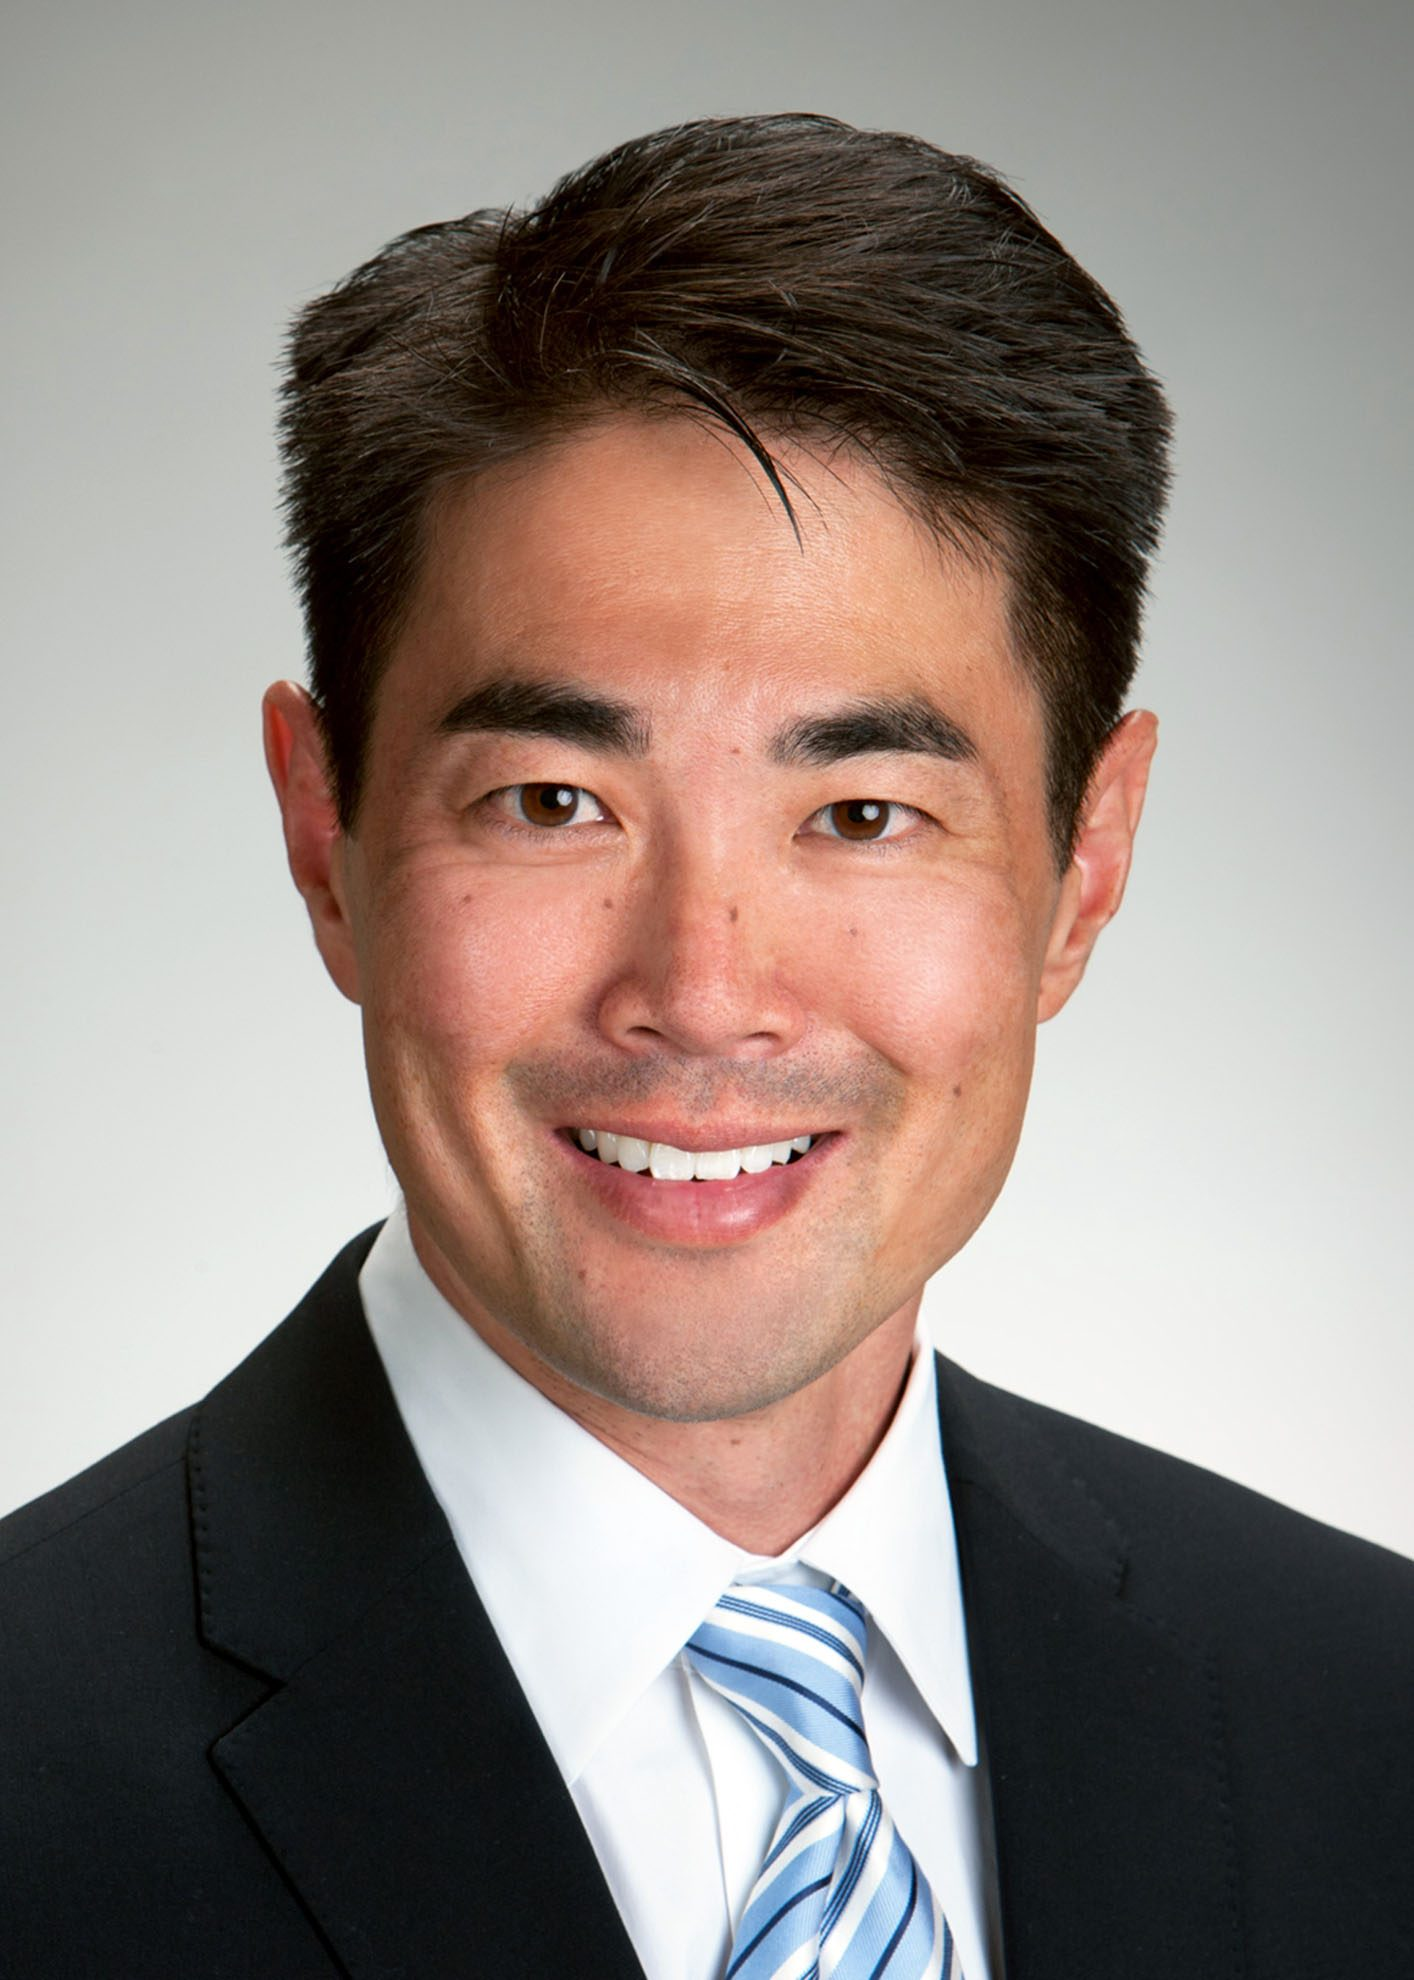 Matthew M  Hanasono | MD Anderson Cancer Center